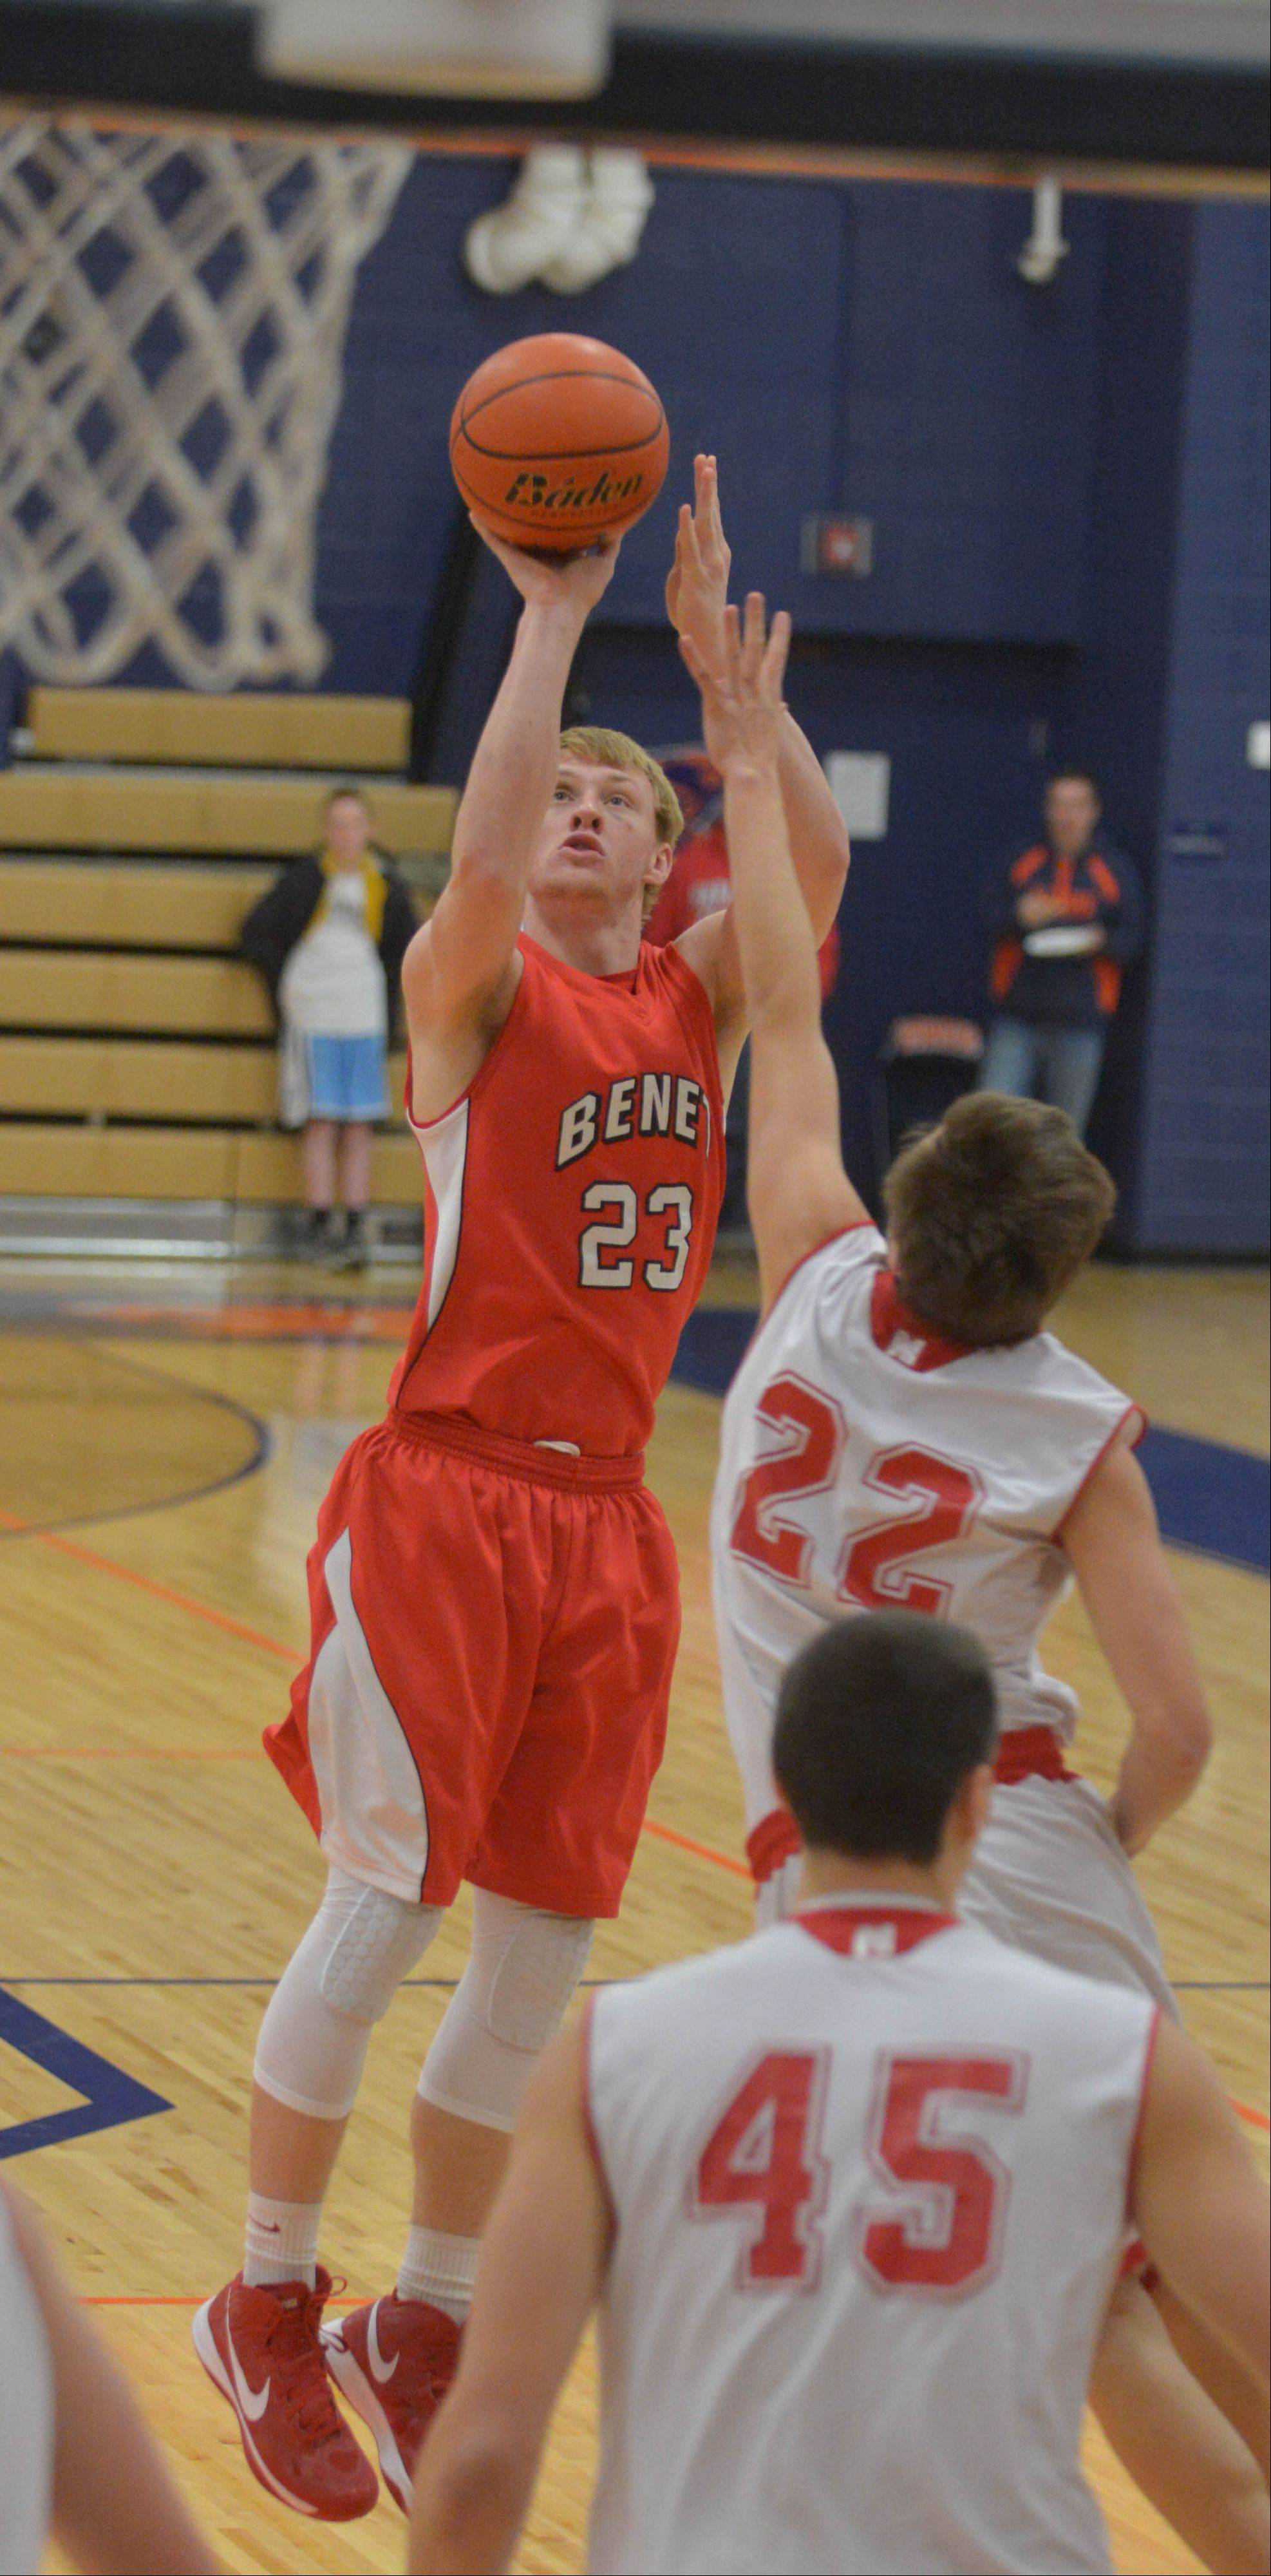 Benet beats Naperville C. for Hoops for Healing title